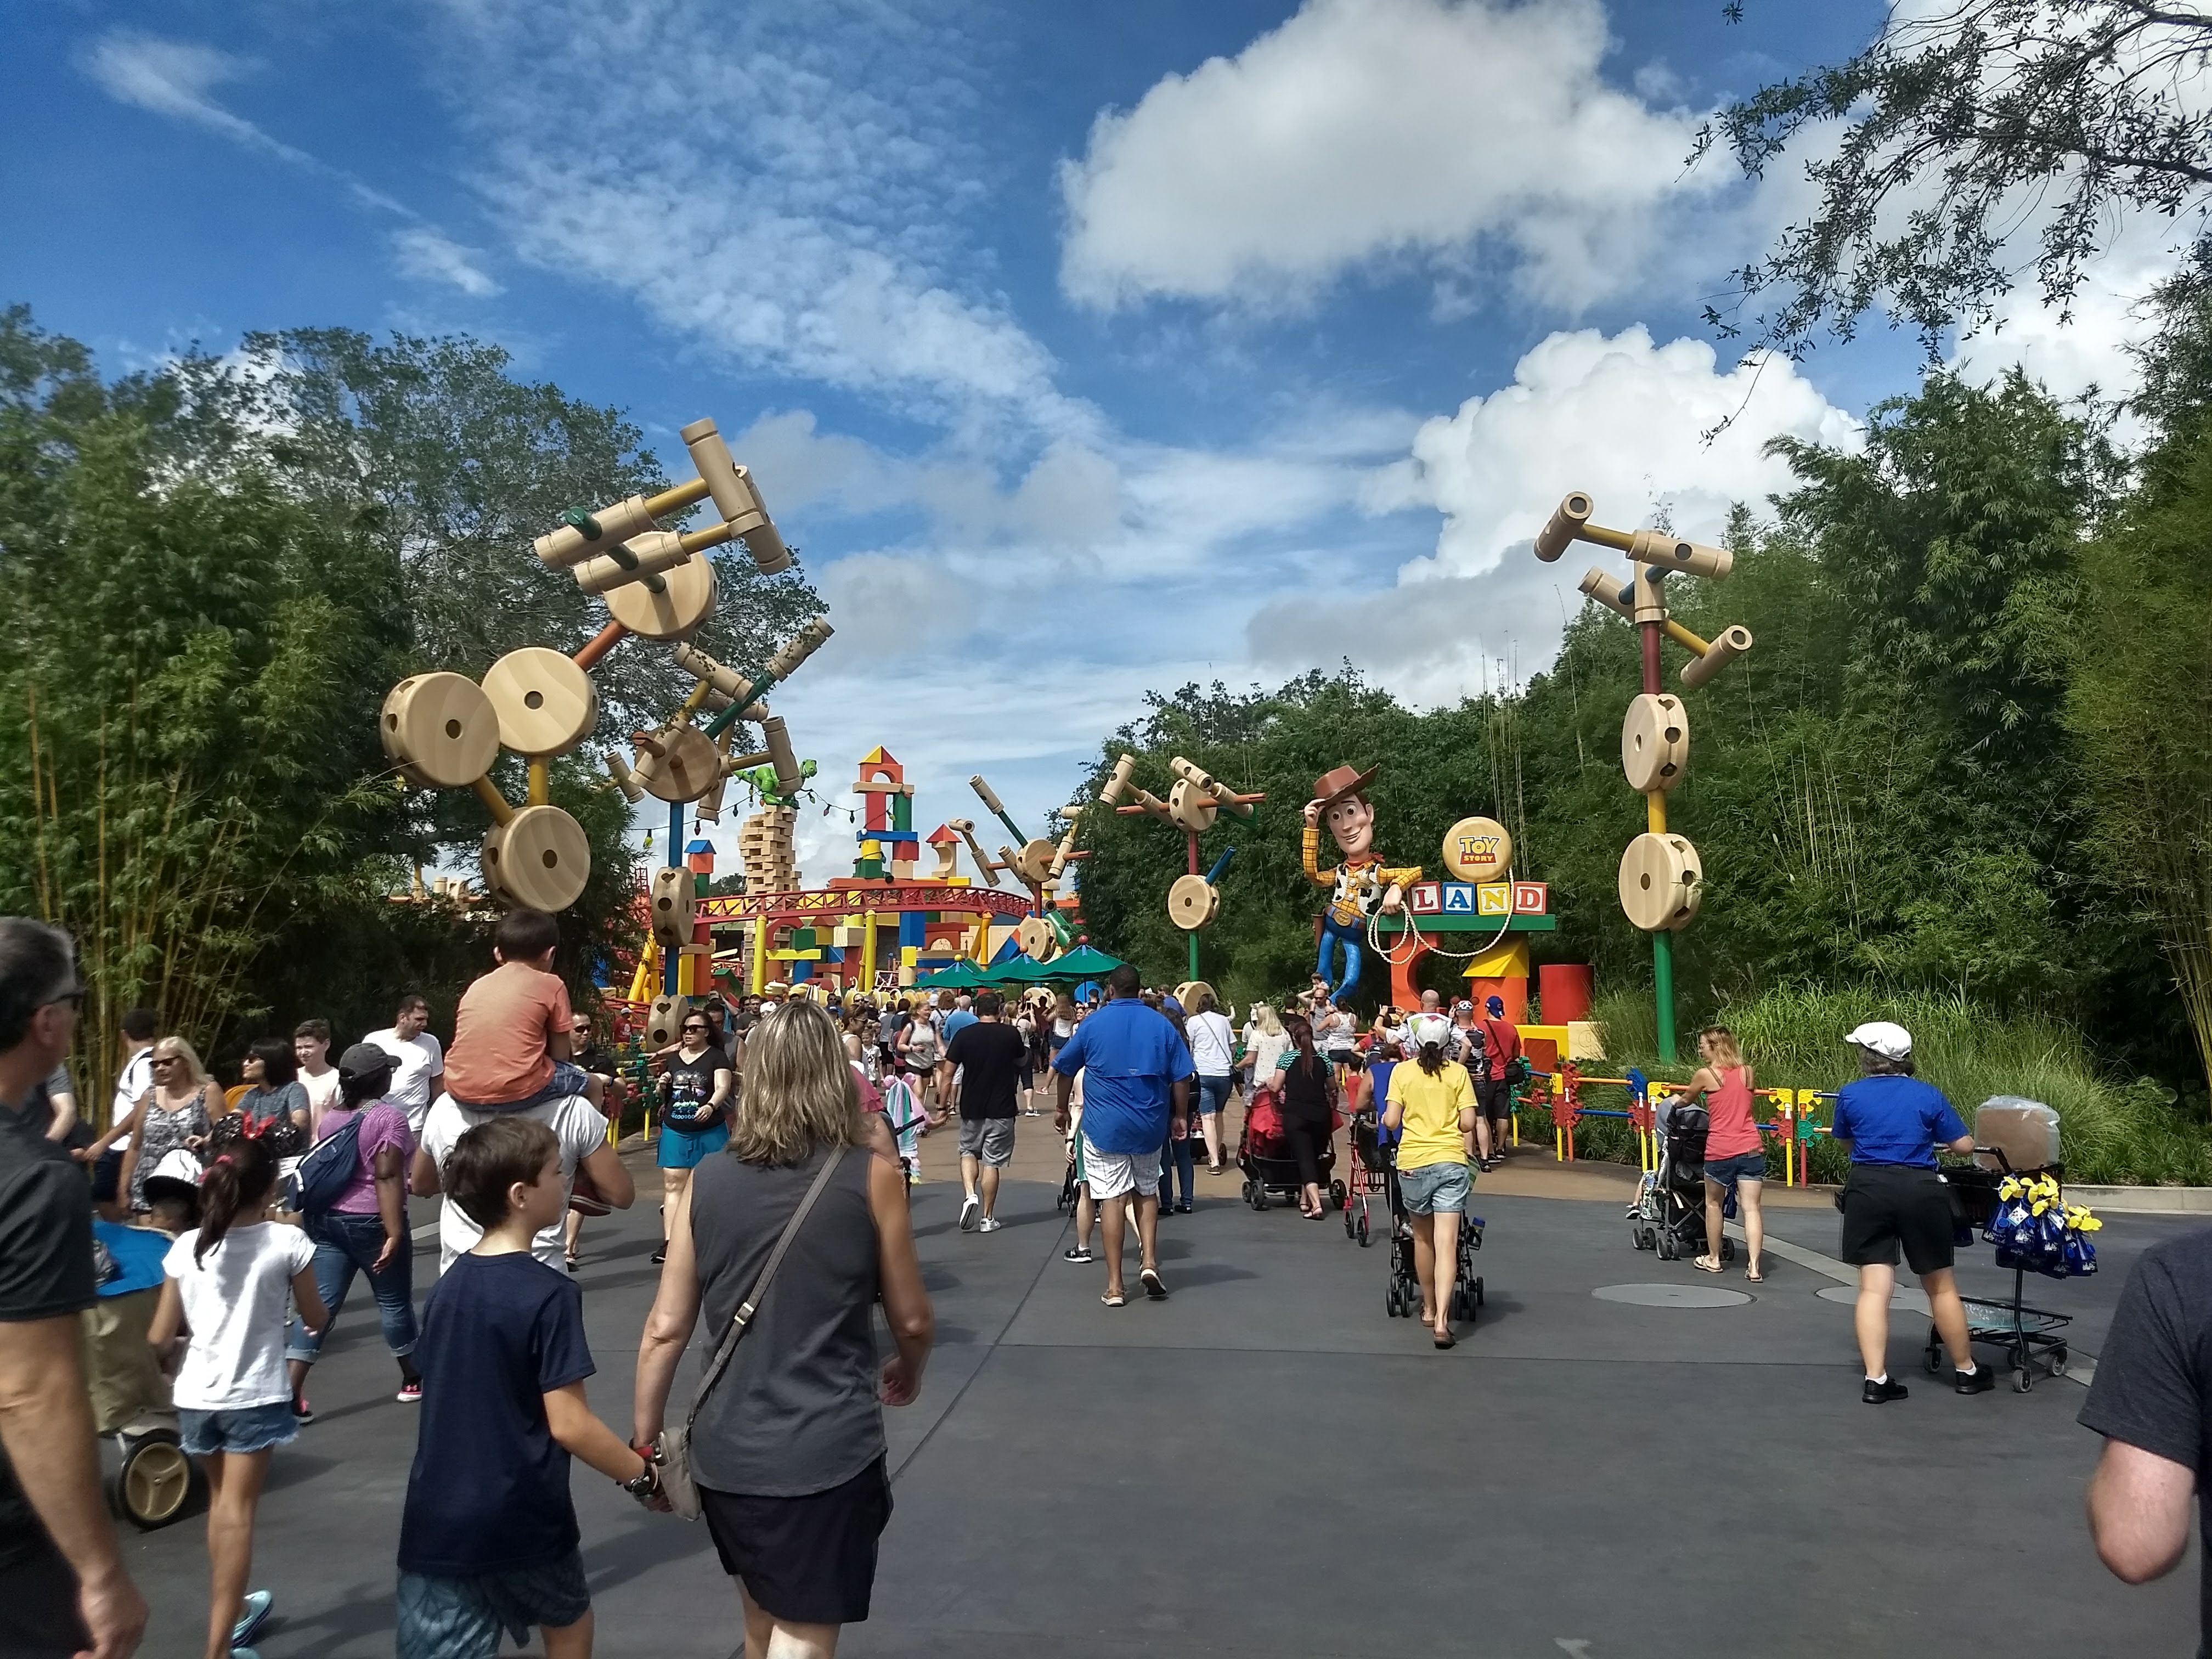 A Cynical Trip: Attraction Highlights